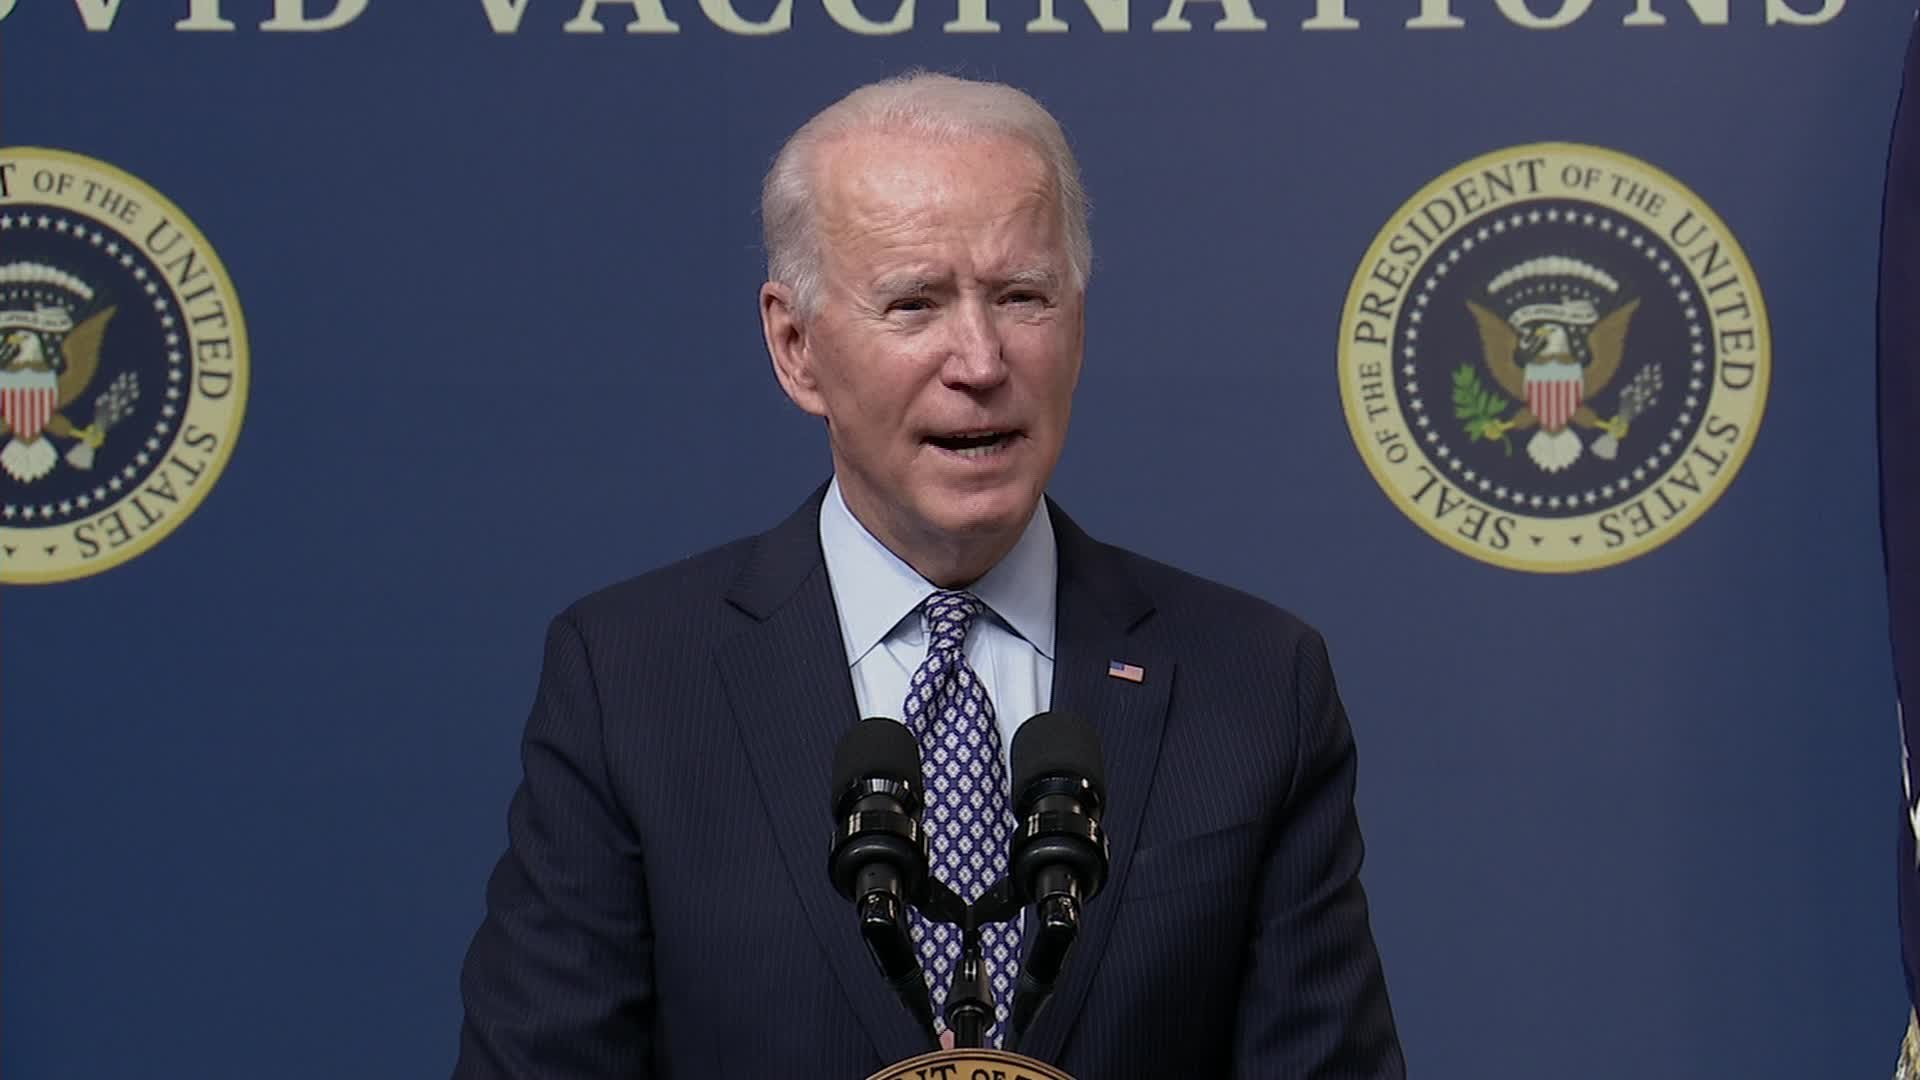 Biden marks 50 million vaccine doses but cautions there's a 'long way to go'